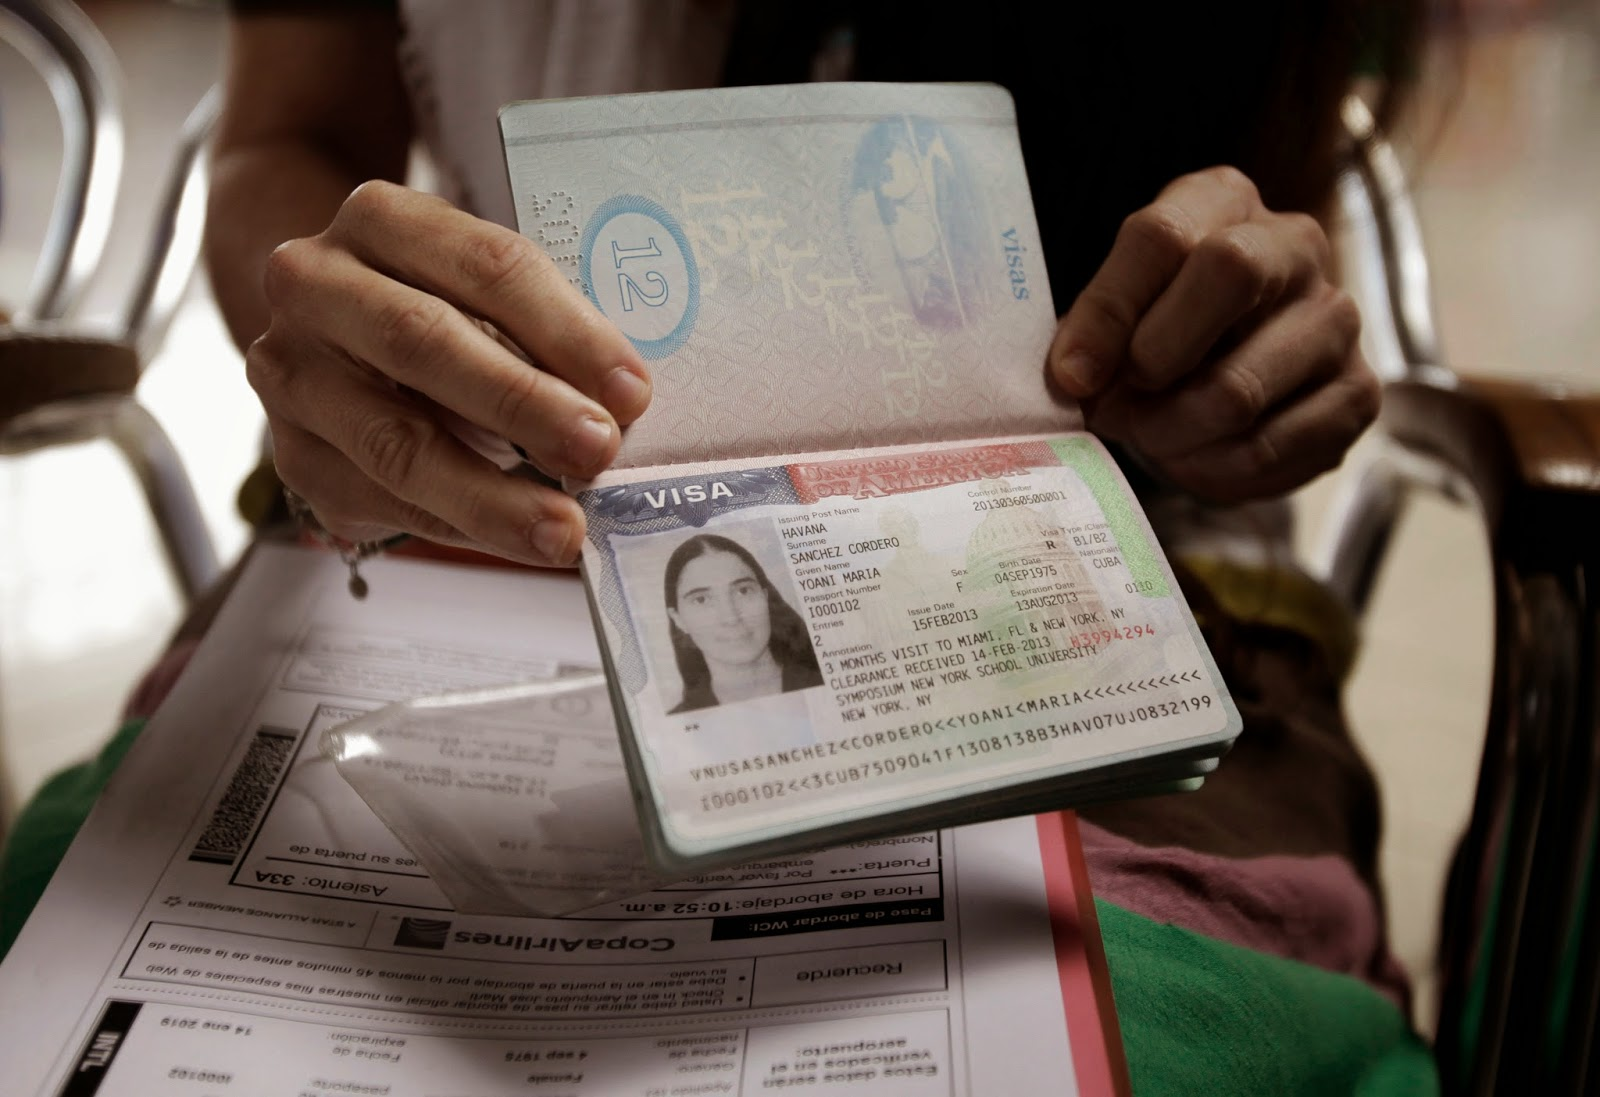 Fake Identity Cards, Buy a Fake drivers license, Buy a real